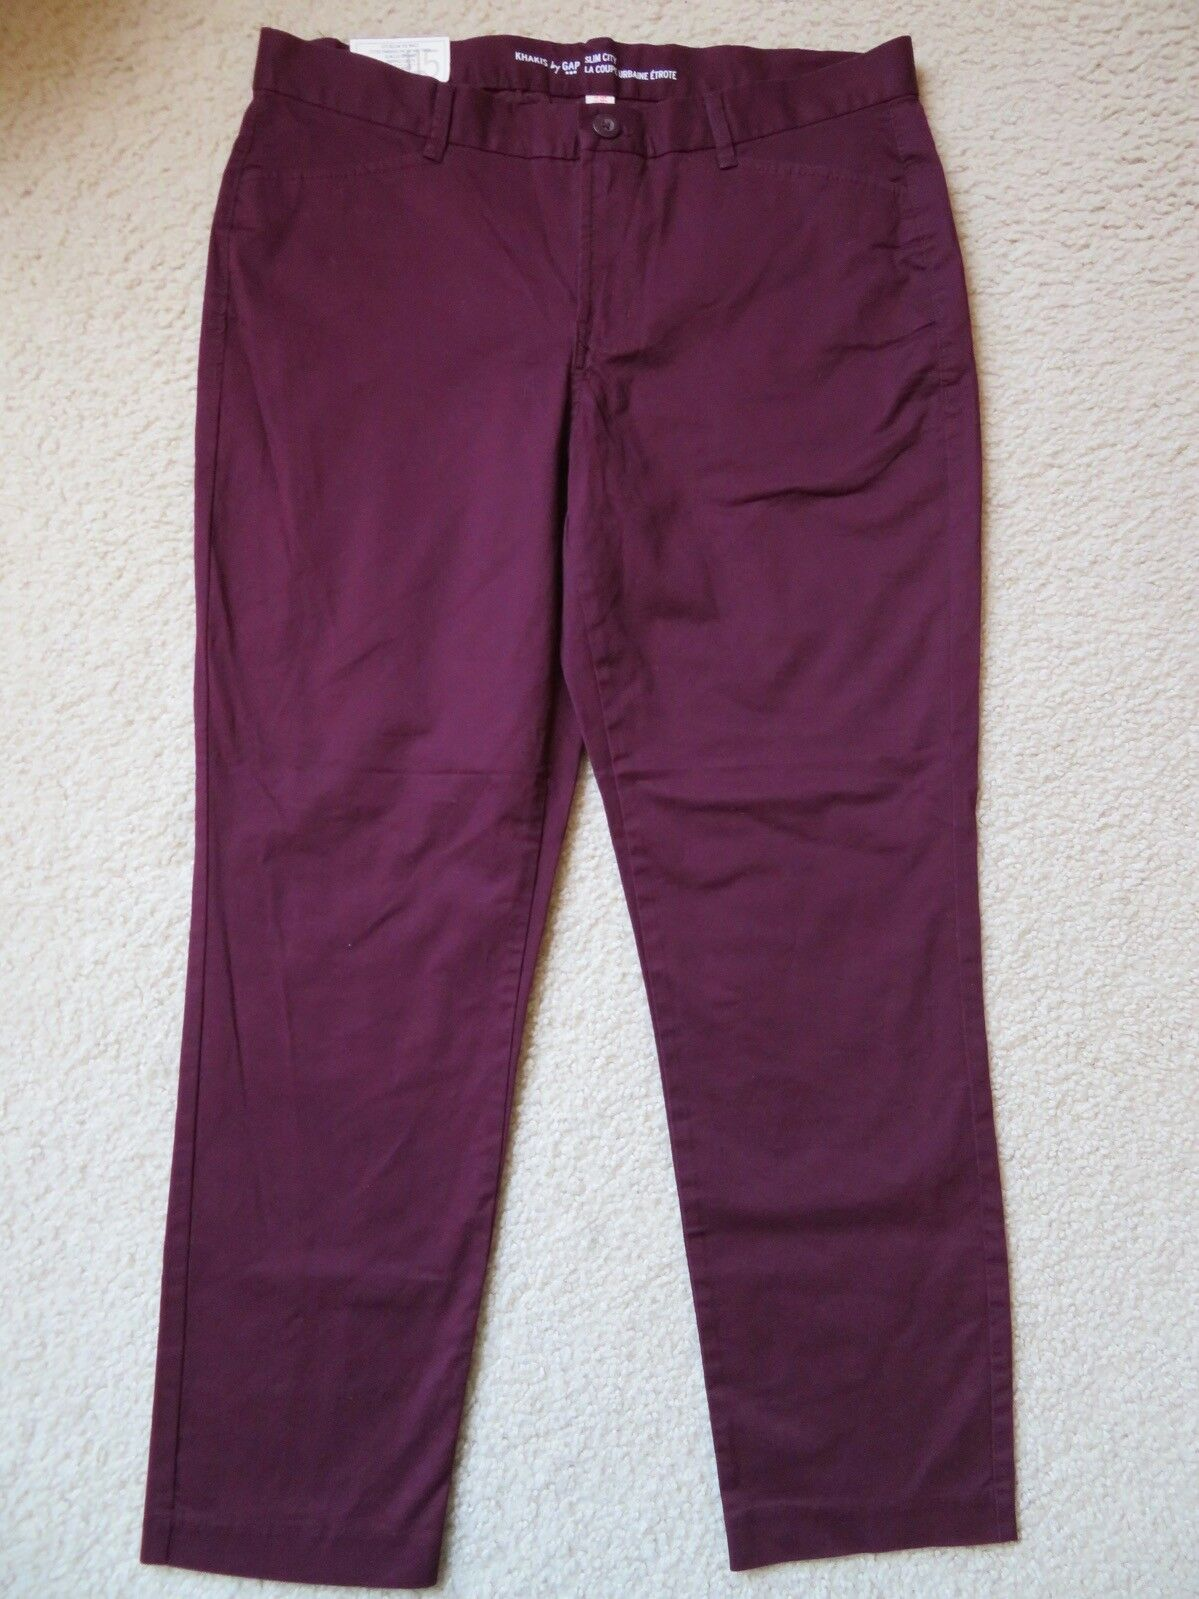 "New Women's Khakis by Gap ""Slim City"" Pants Slim Leg Cropped Maroon Red Size 10"